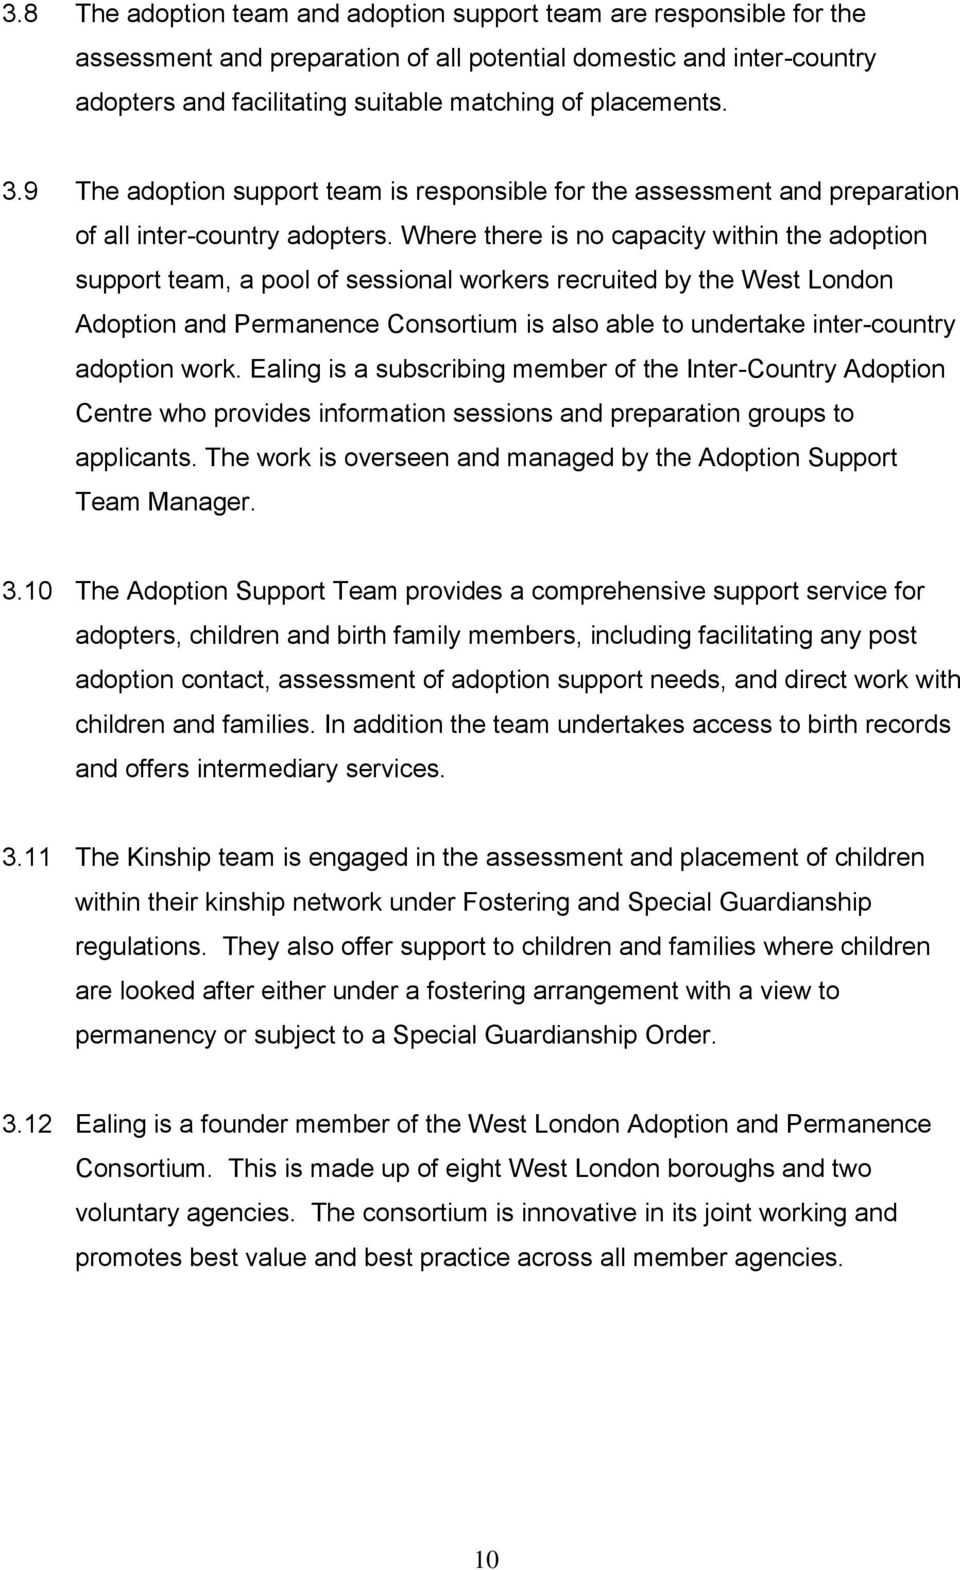 Where there is no capacity within the adoption support team, a pool of sessional workers recruited by the West London Adoption and Permanence Consortium is also able to undertake inter-country